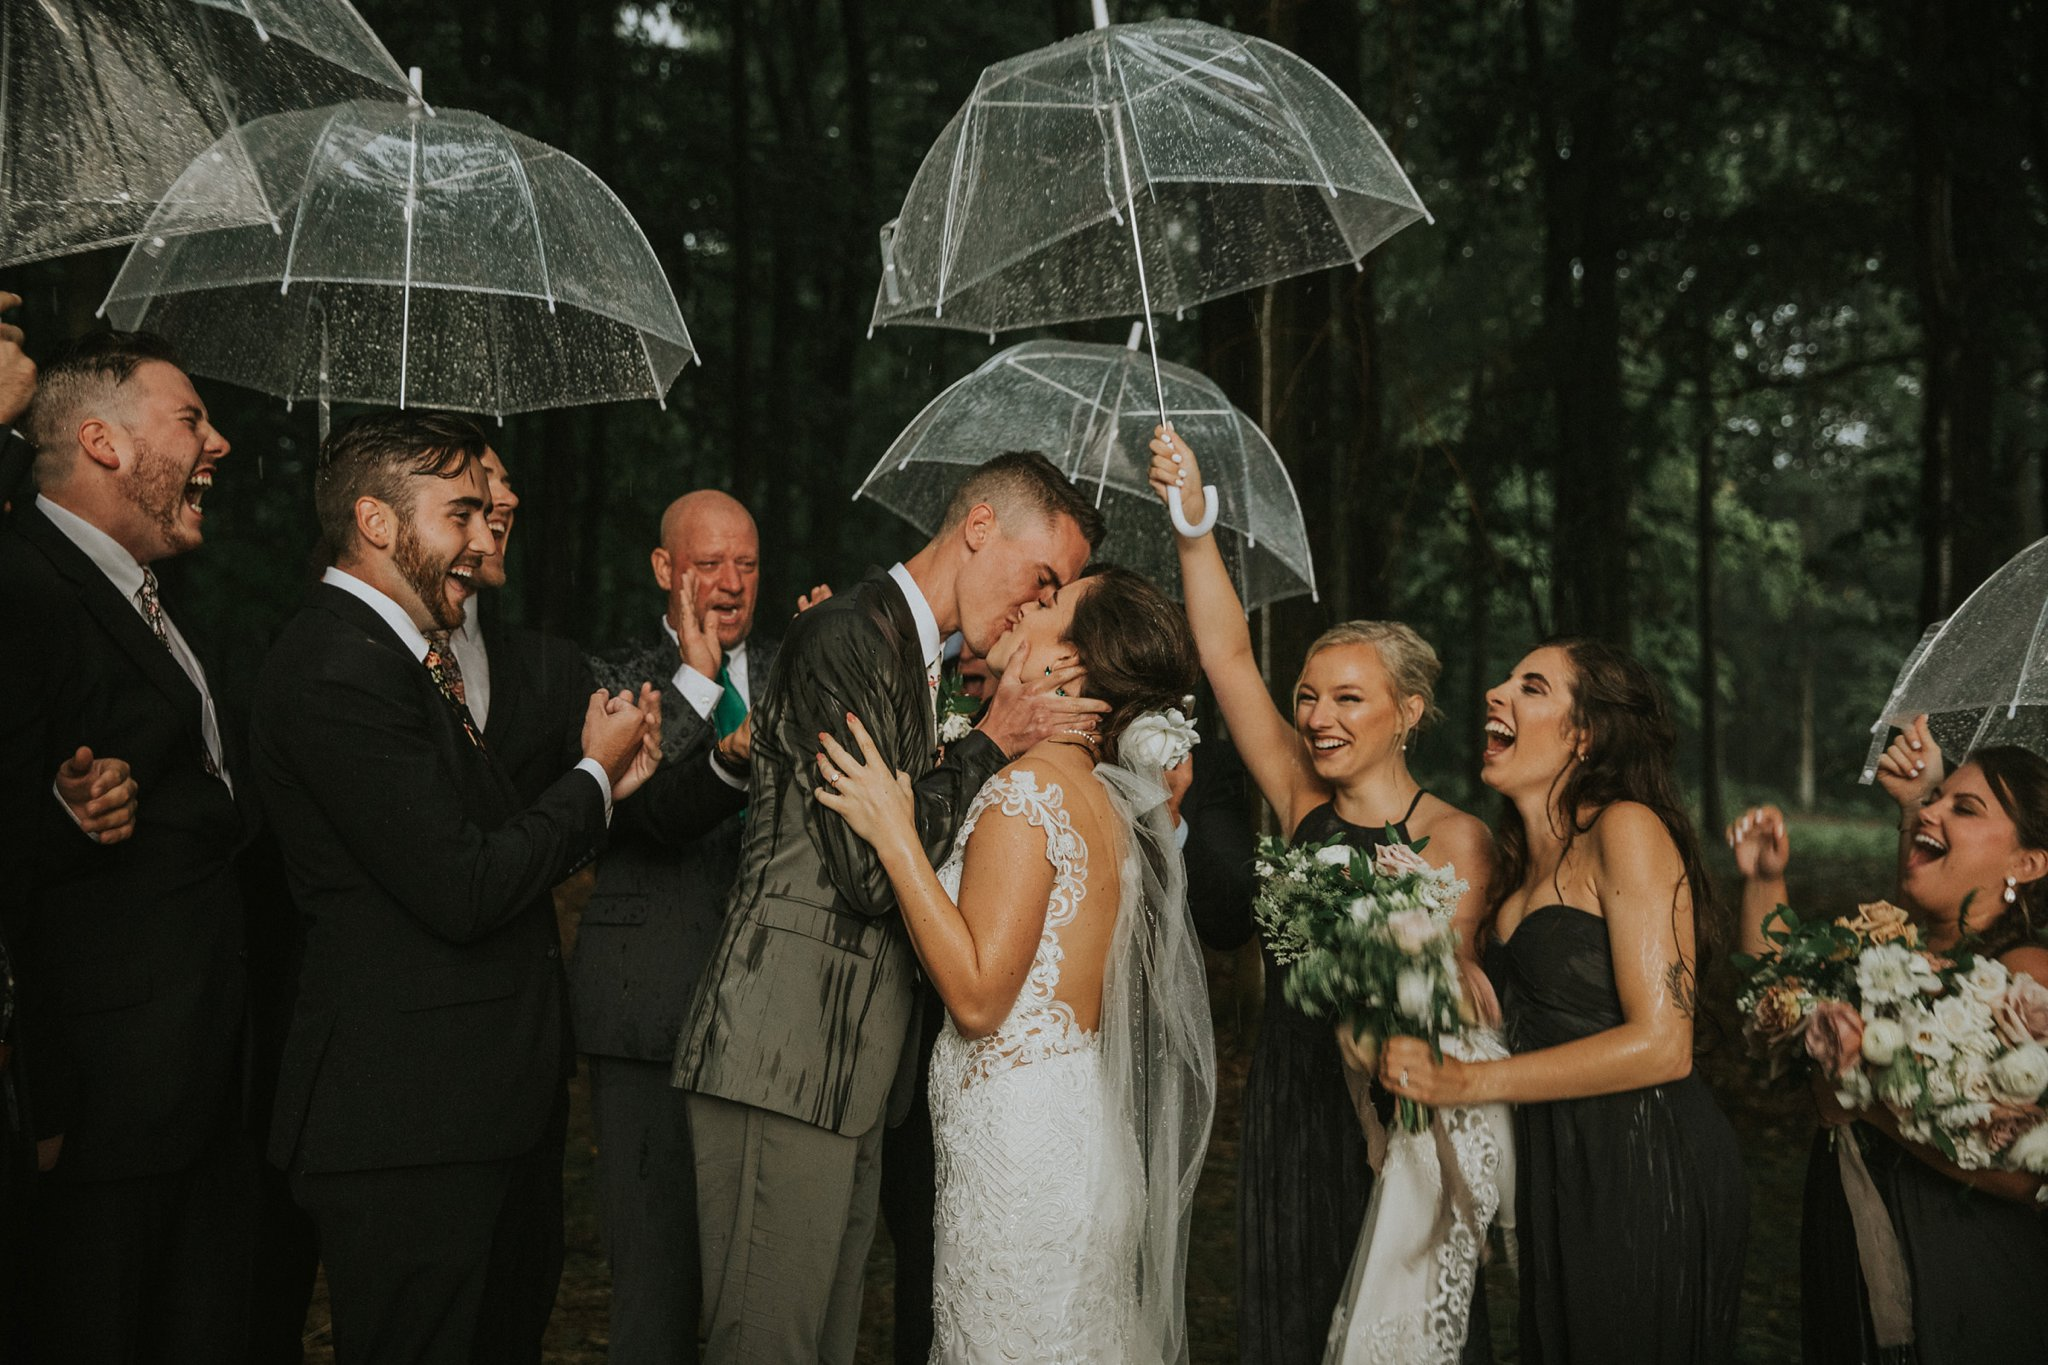 Southern-Indiana-Rainy-Outdoor-Wedding-Photos_0041.jpg